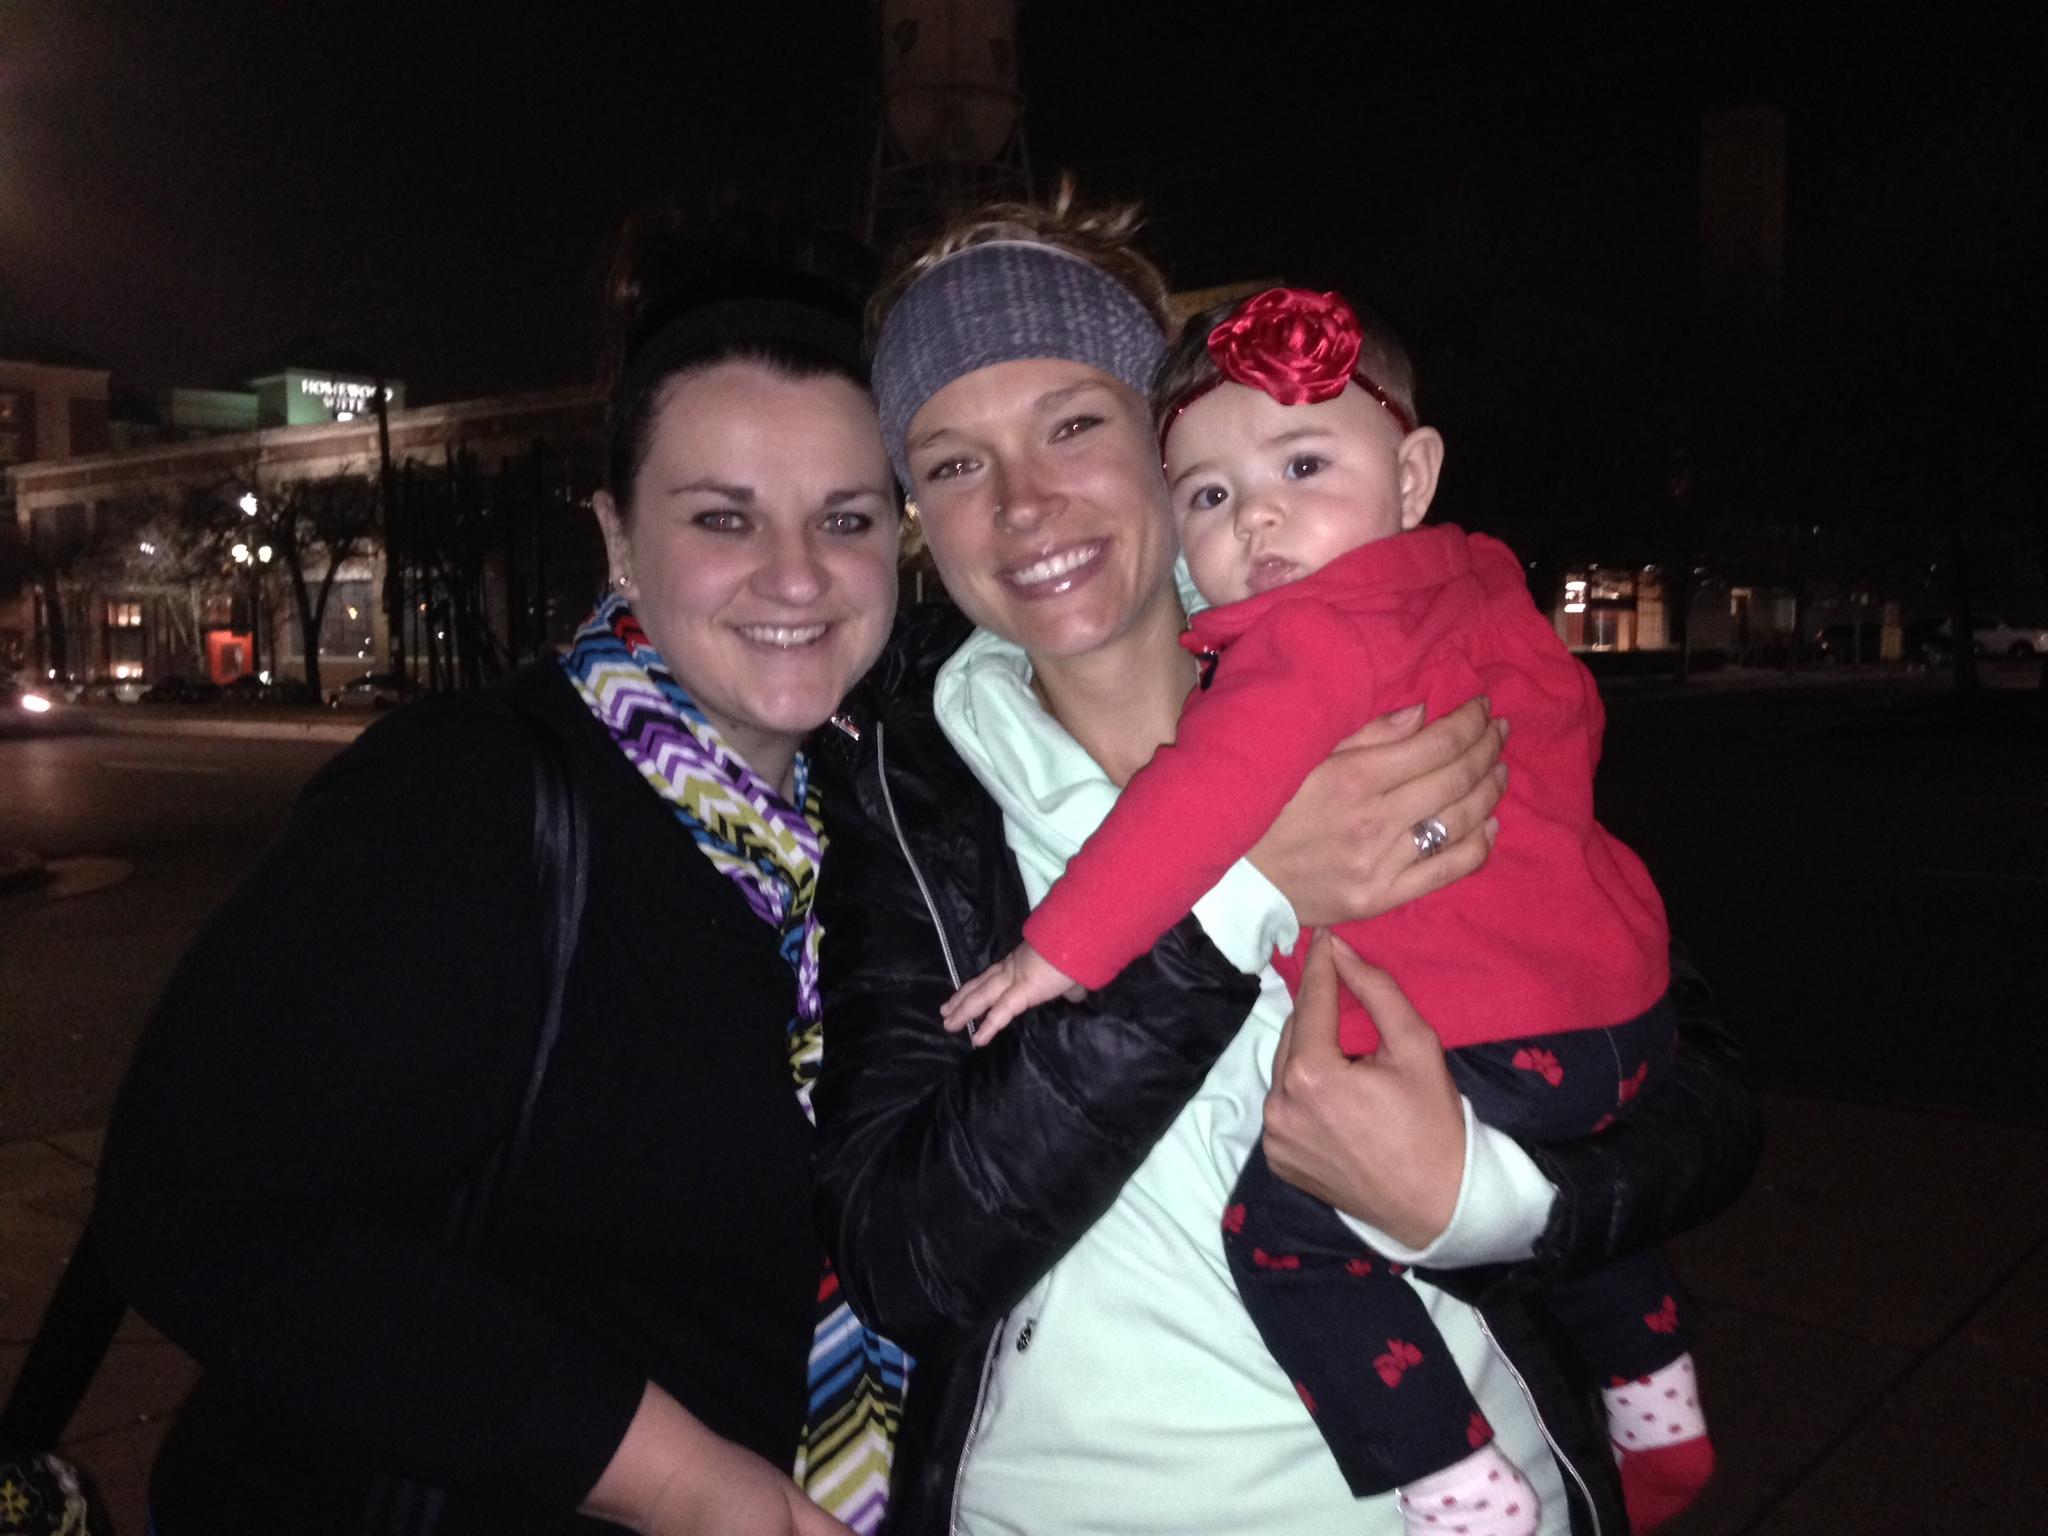 My incredible Sister Lindsey, her beautiful daughter Ava and me.